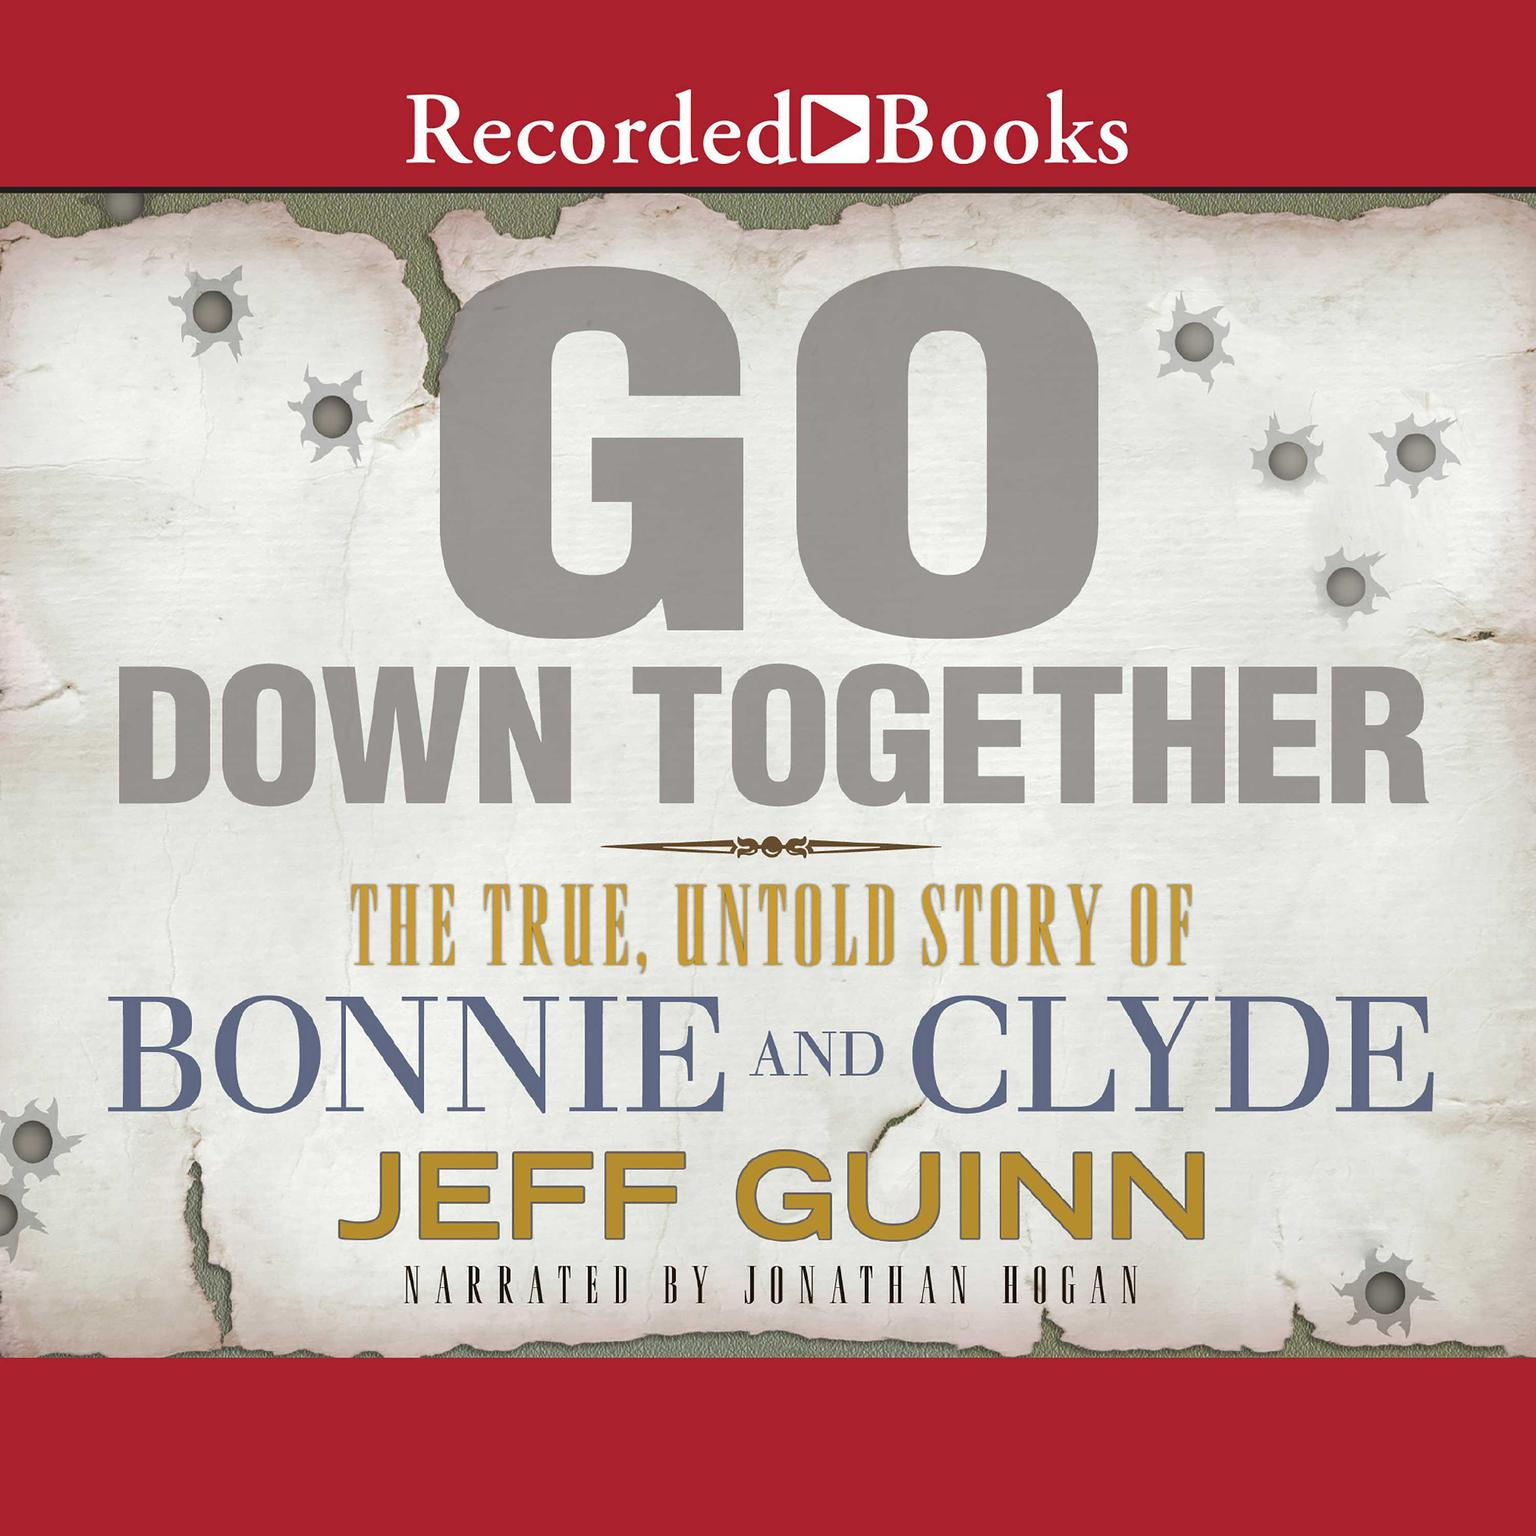 Printable Go Down Together: The True, Untold Story of Bonnie and Clyde Audiobook Cover Art